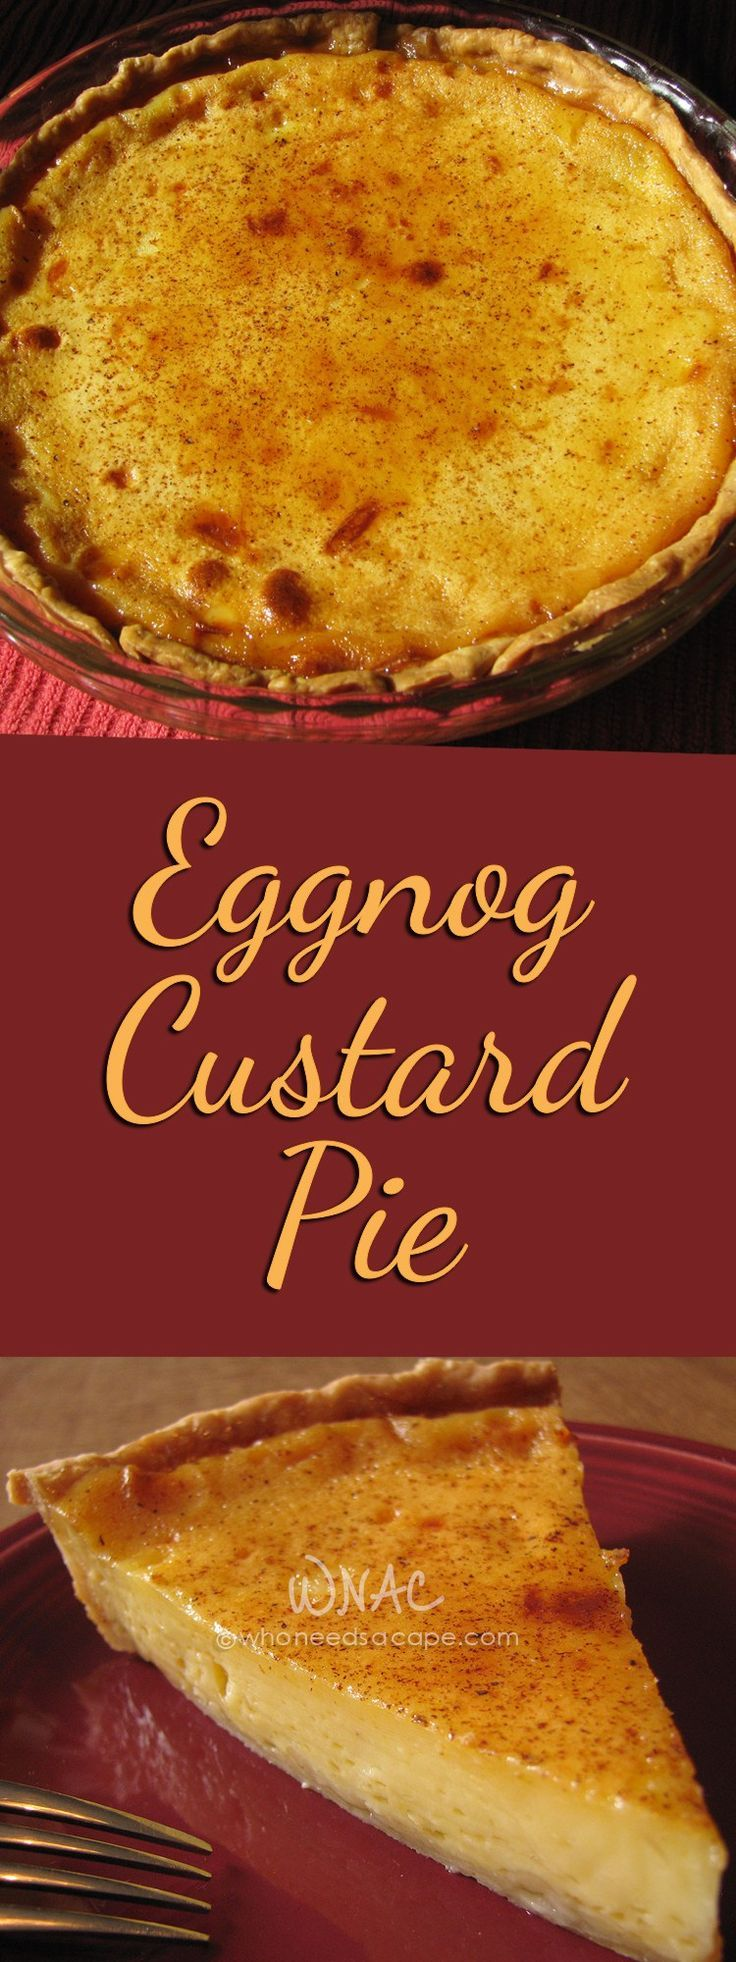 Eggnog Custard Pie a delicious holiday dessert that's perfect for Christmas.